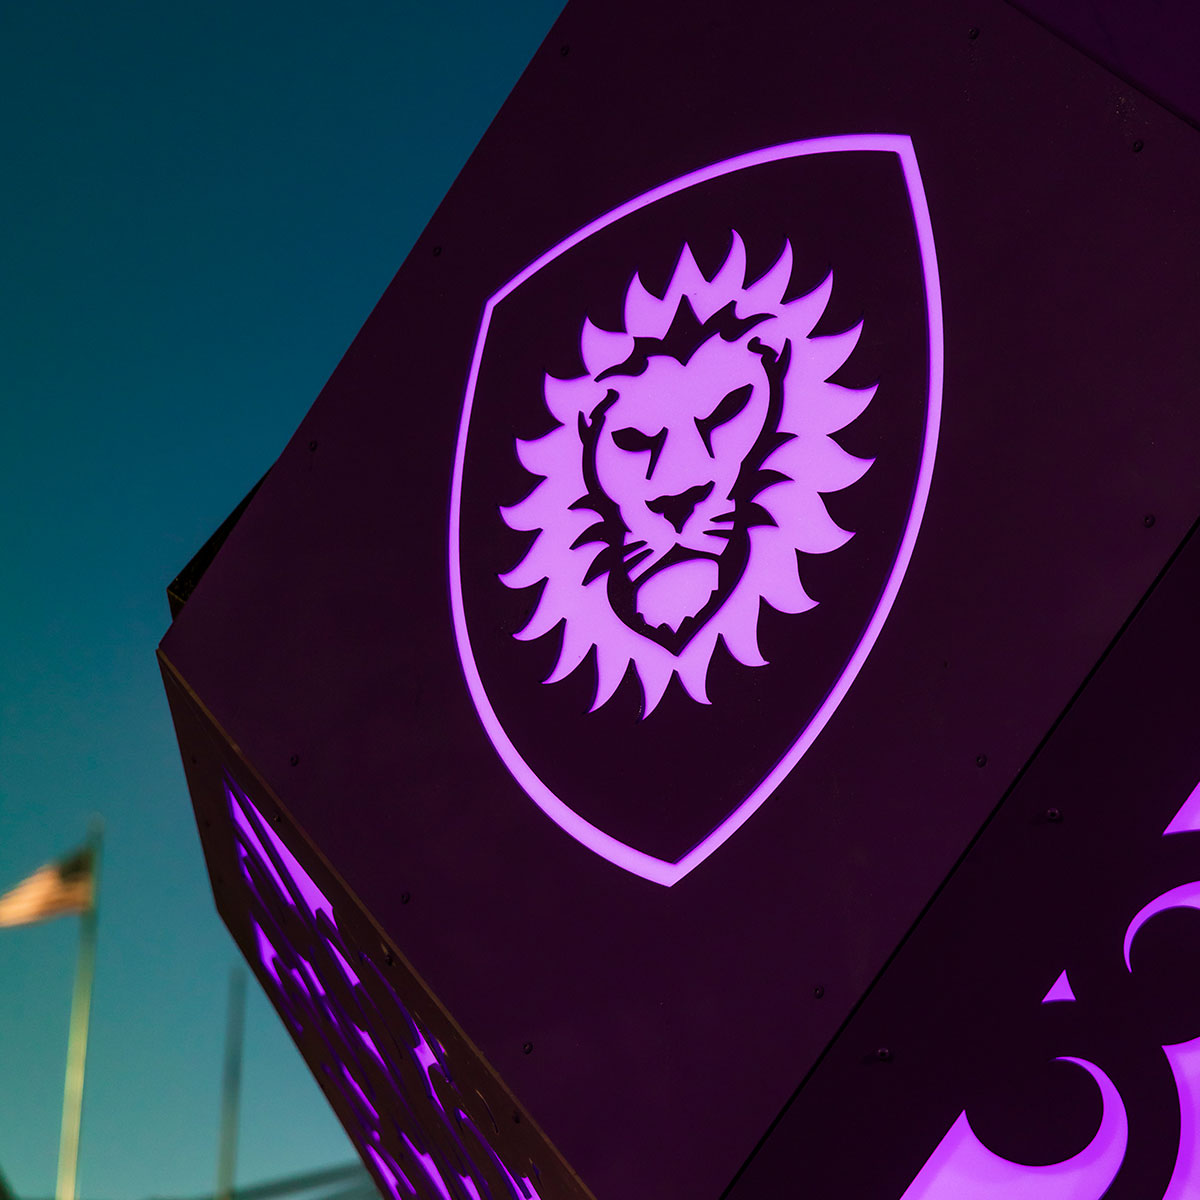 A light up panel on the solar sculpture that features the Orlando City logo.